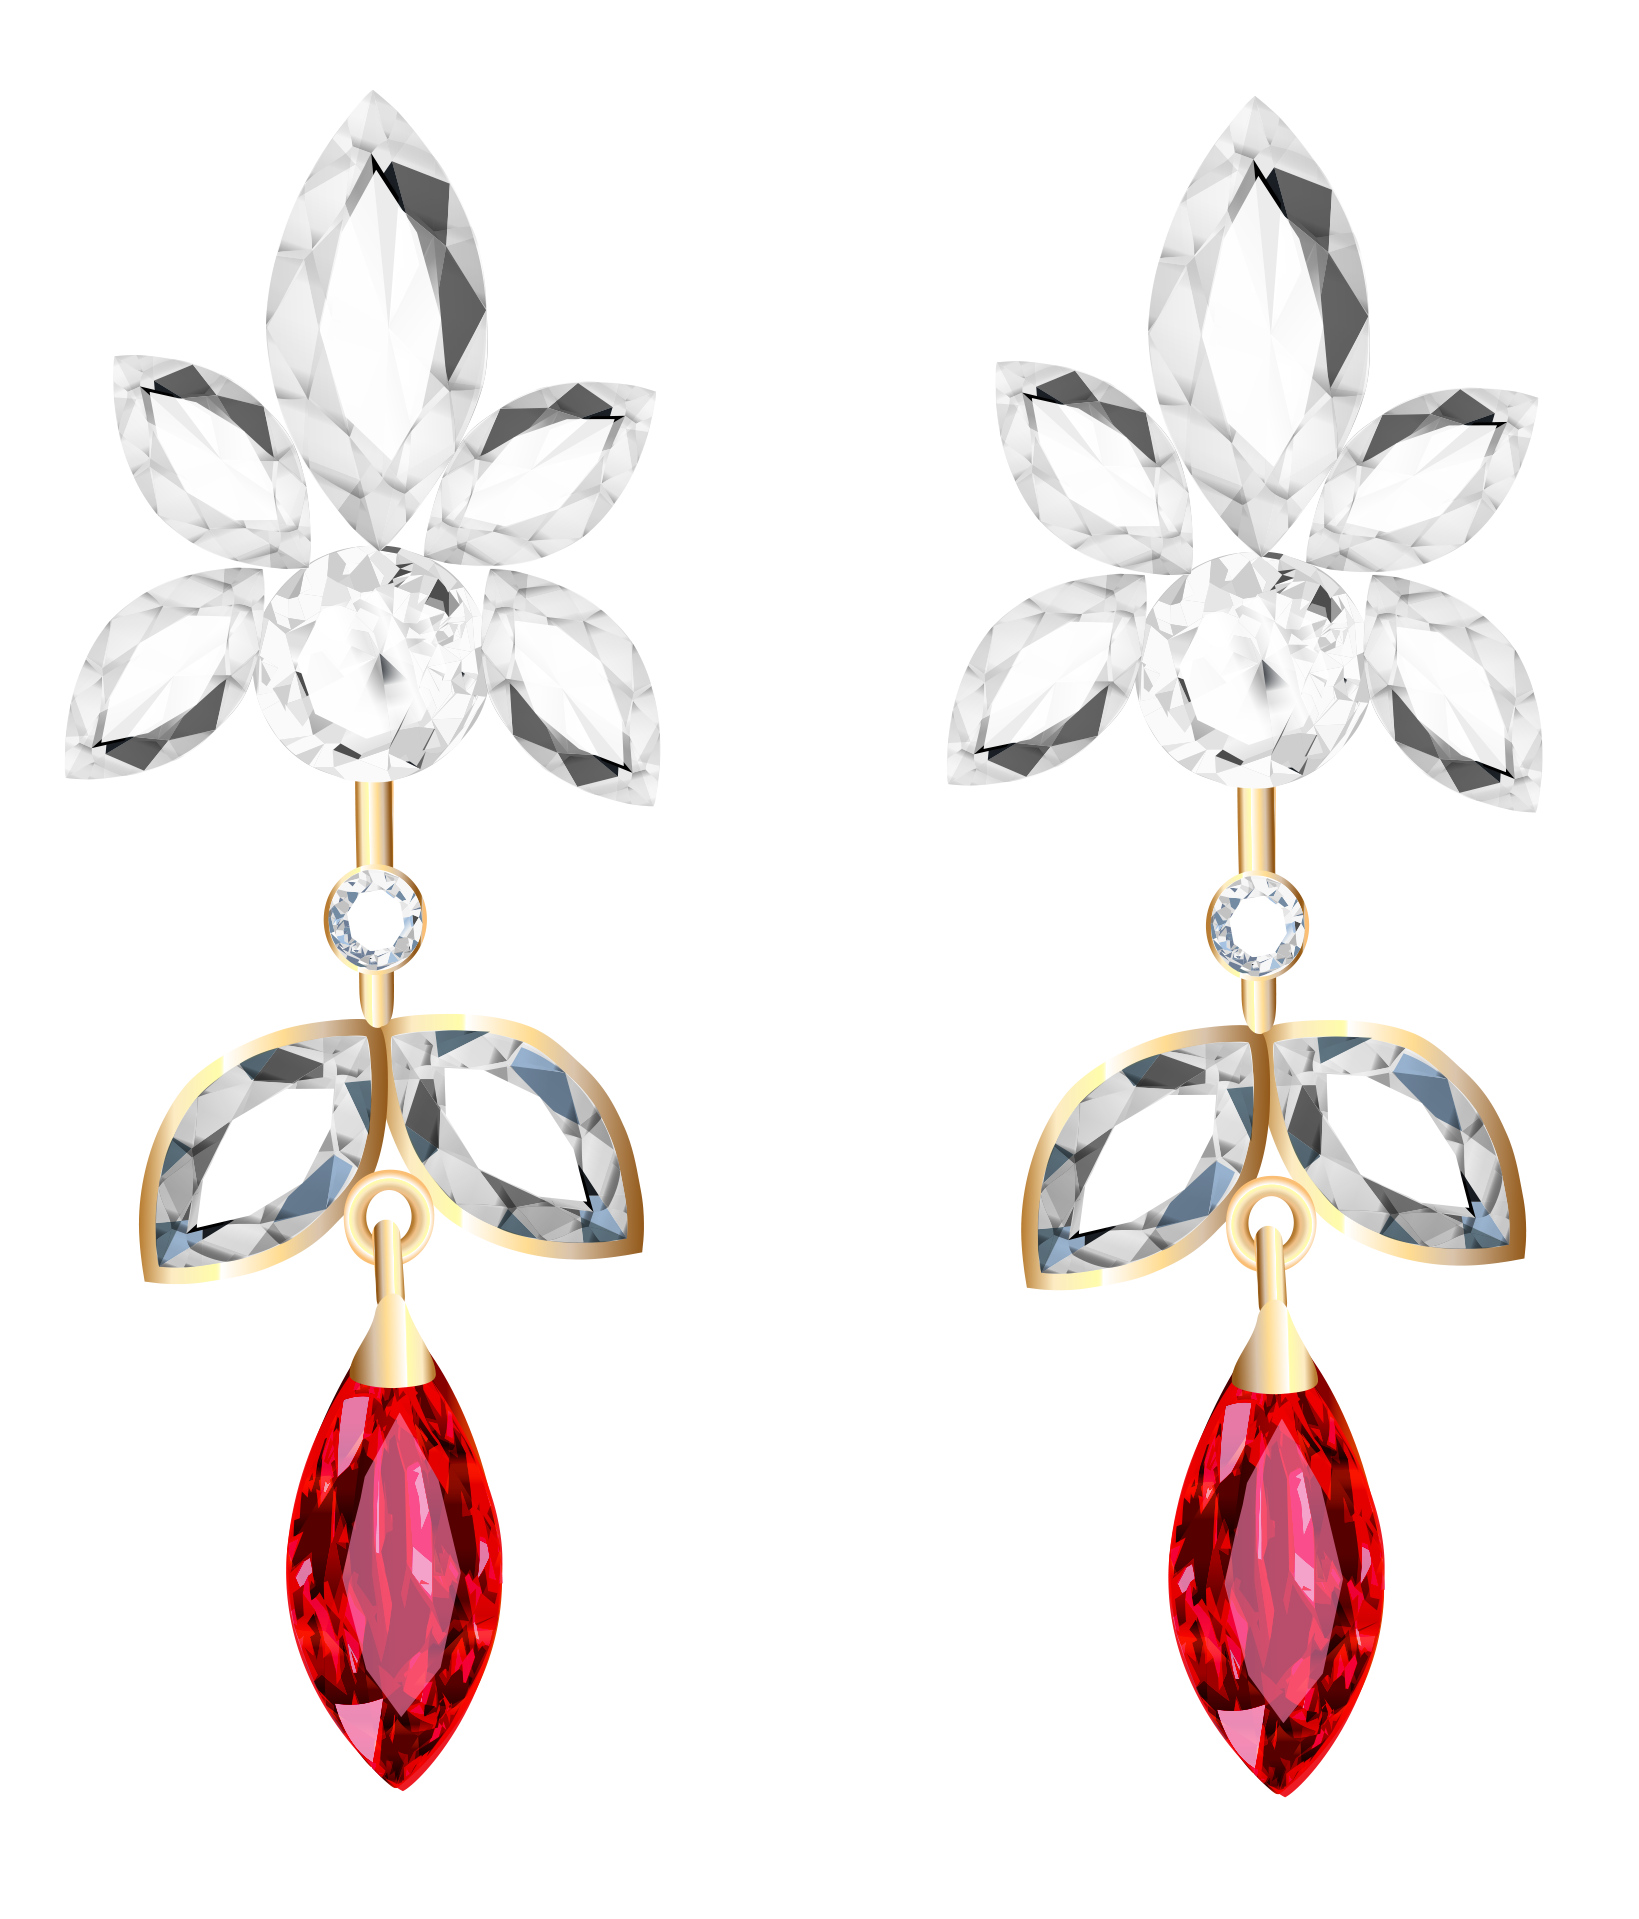 Transparent Diamond and Ruby Earrings PNG Clipart.